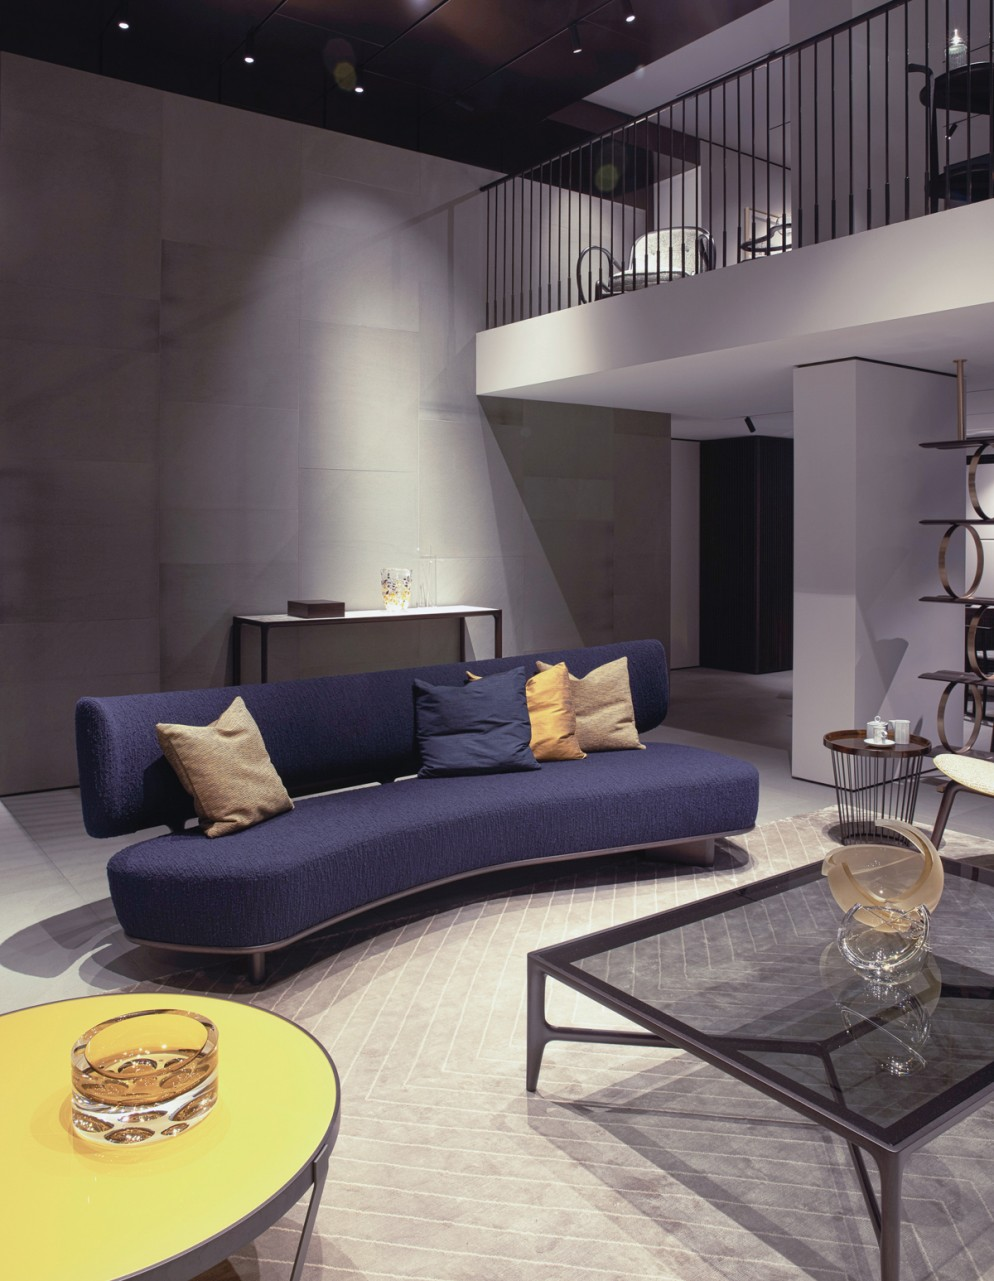 ceccotti-durini-design-district-living-corriere-1